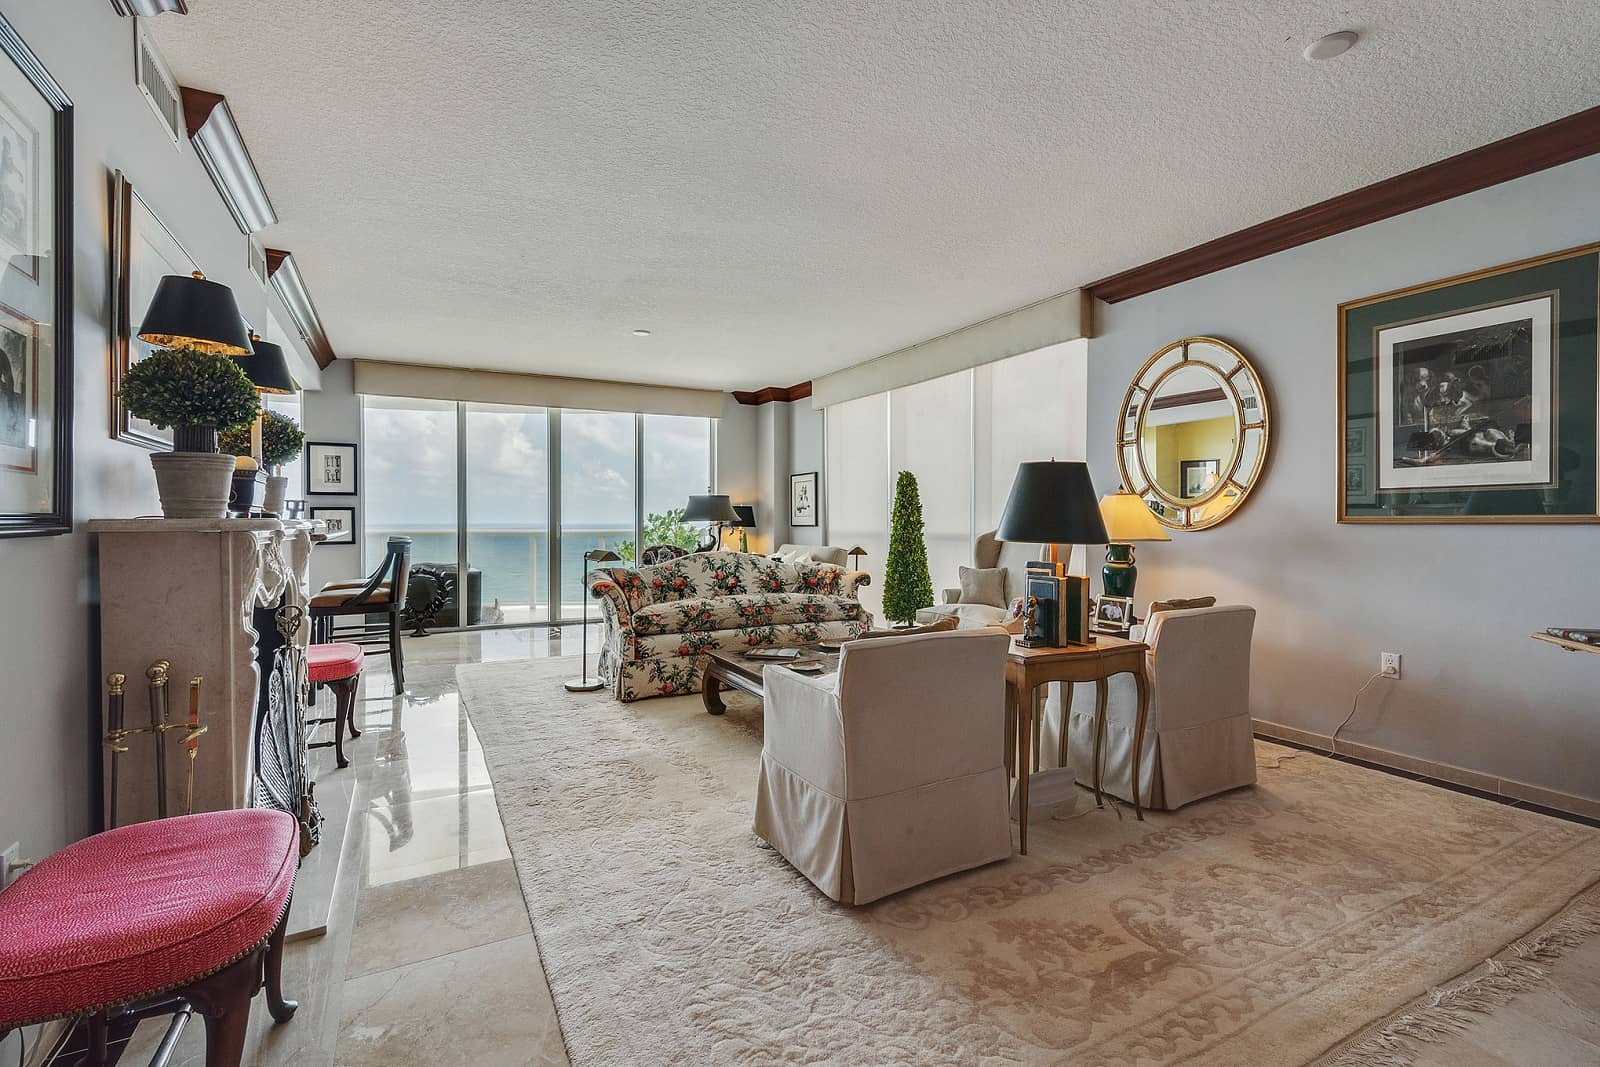 Real Estate Photography in Fort Lauderdale - FL - USA - Living Area View